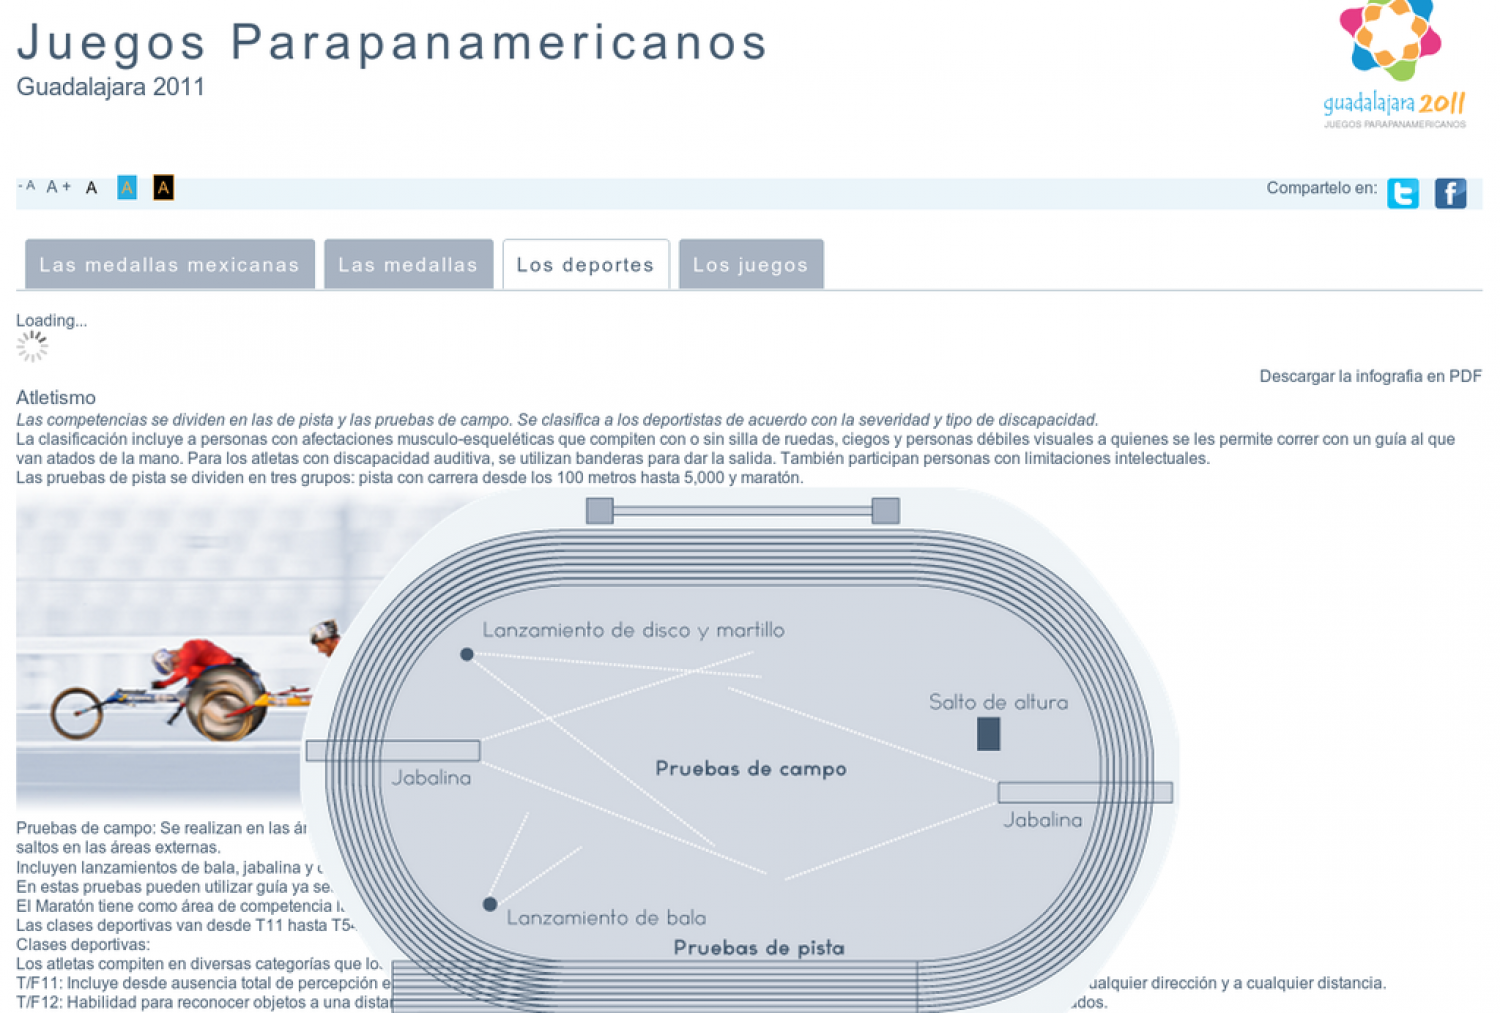 Parapanamerican games 2011 Infographic